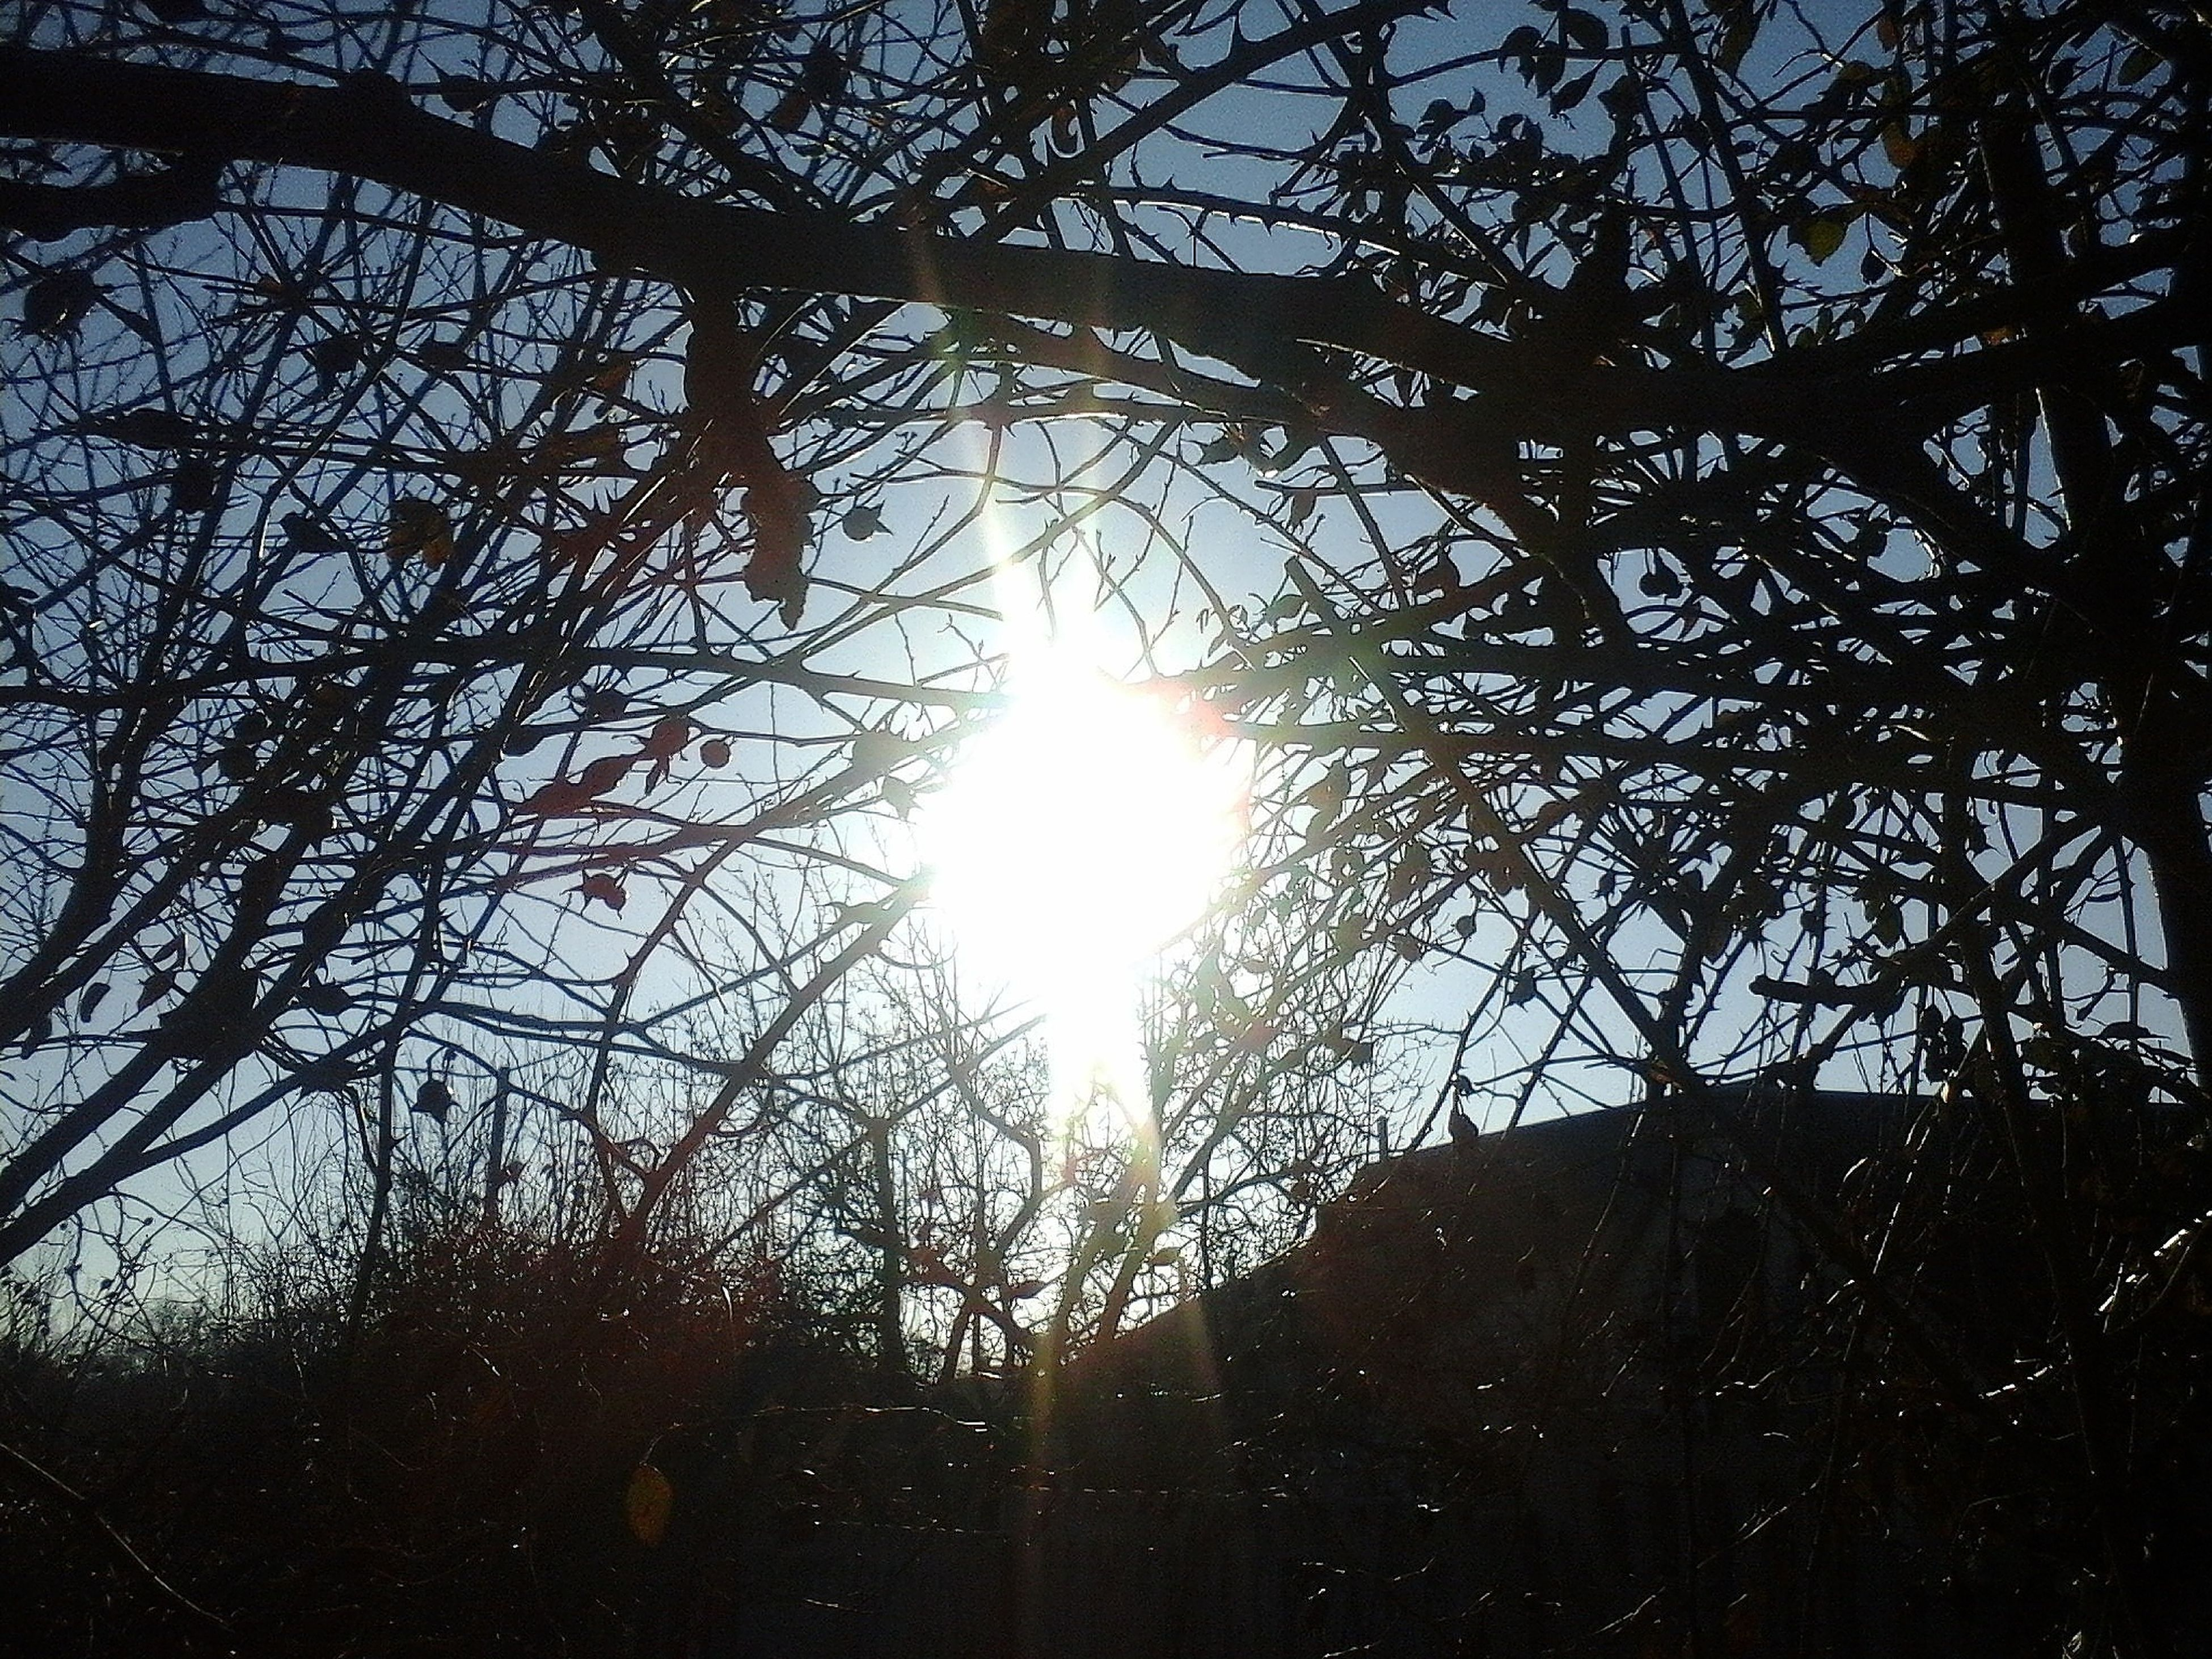 sunlight, sun, lens flare, low angle view, sunbeam, sky, nature, tree, beauty in nature, outdoors, growth, no people, sunset, day, refraction